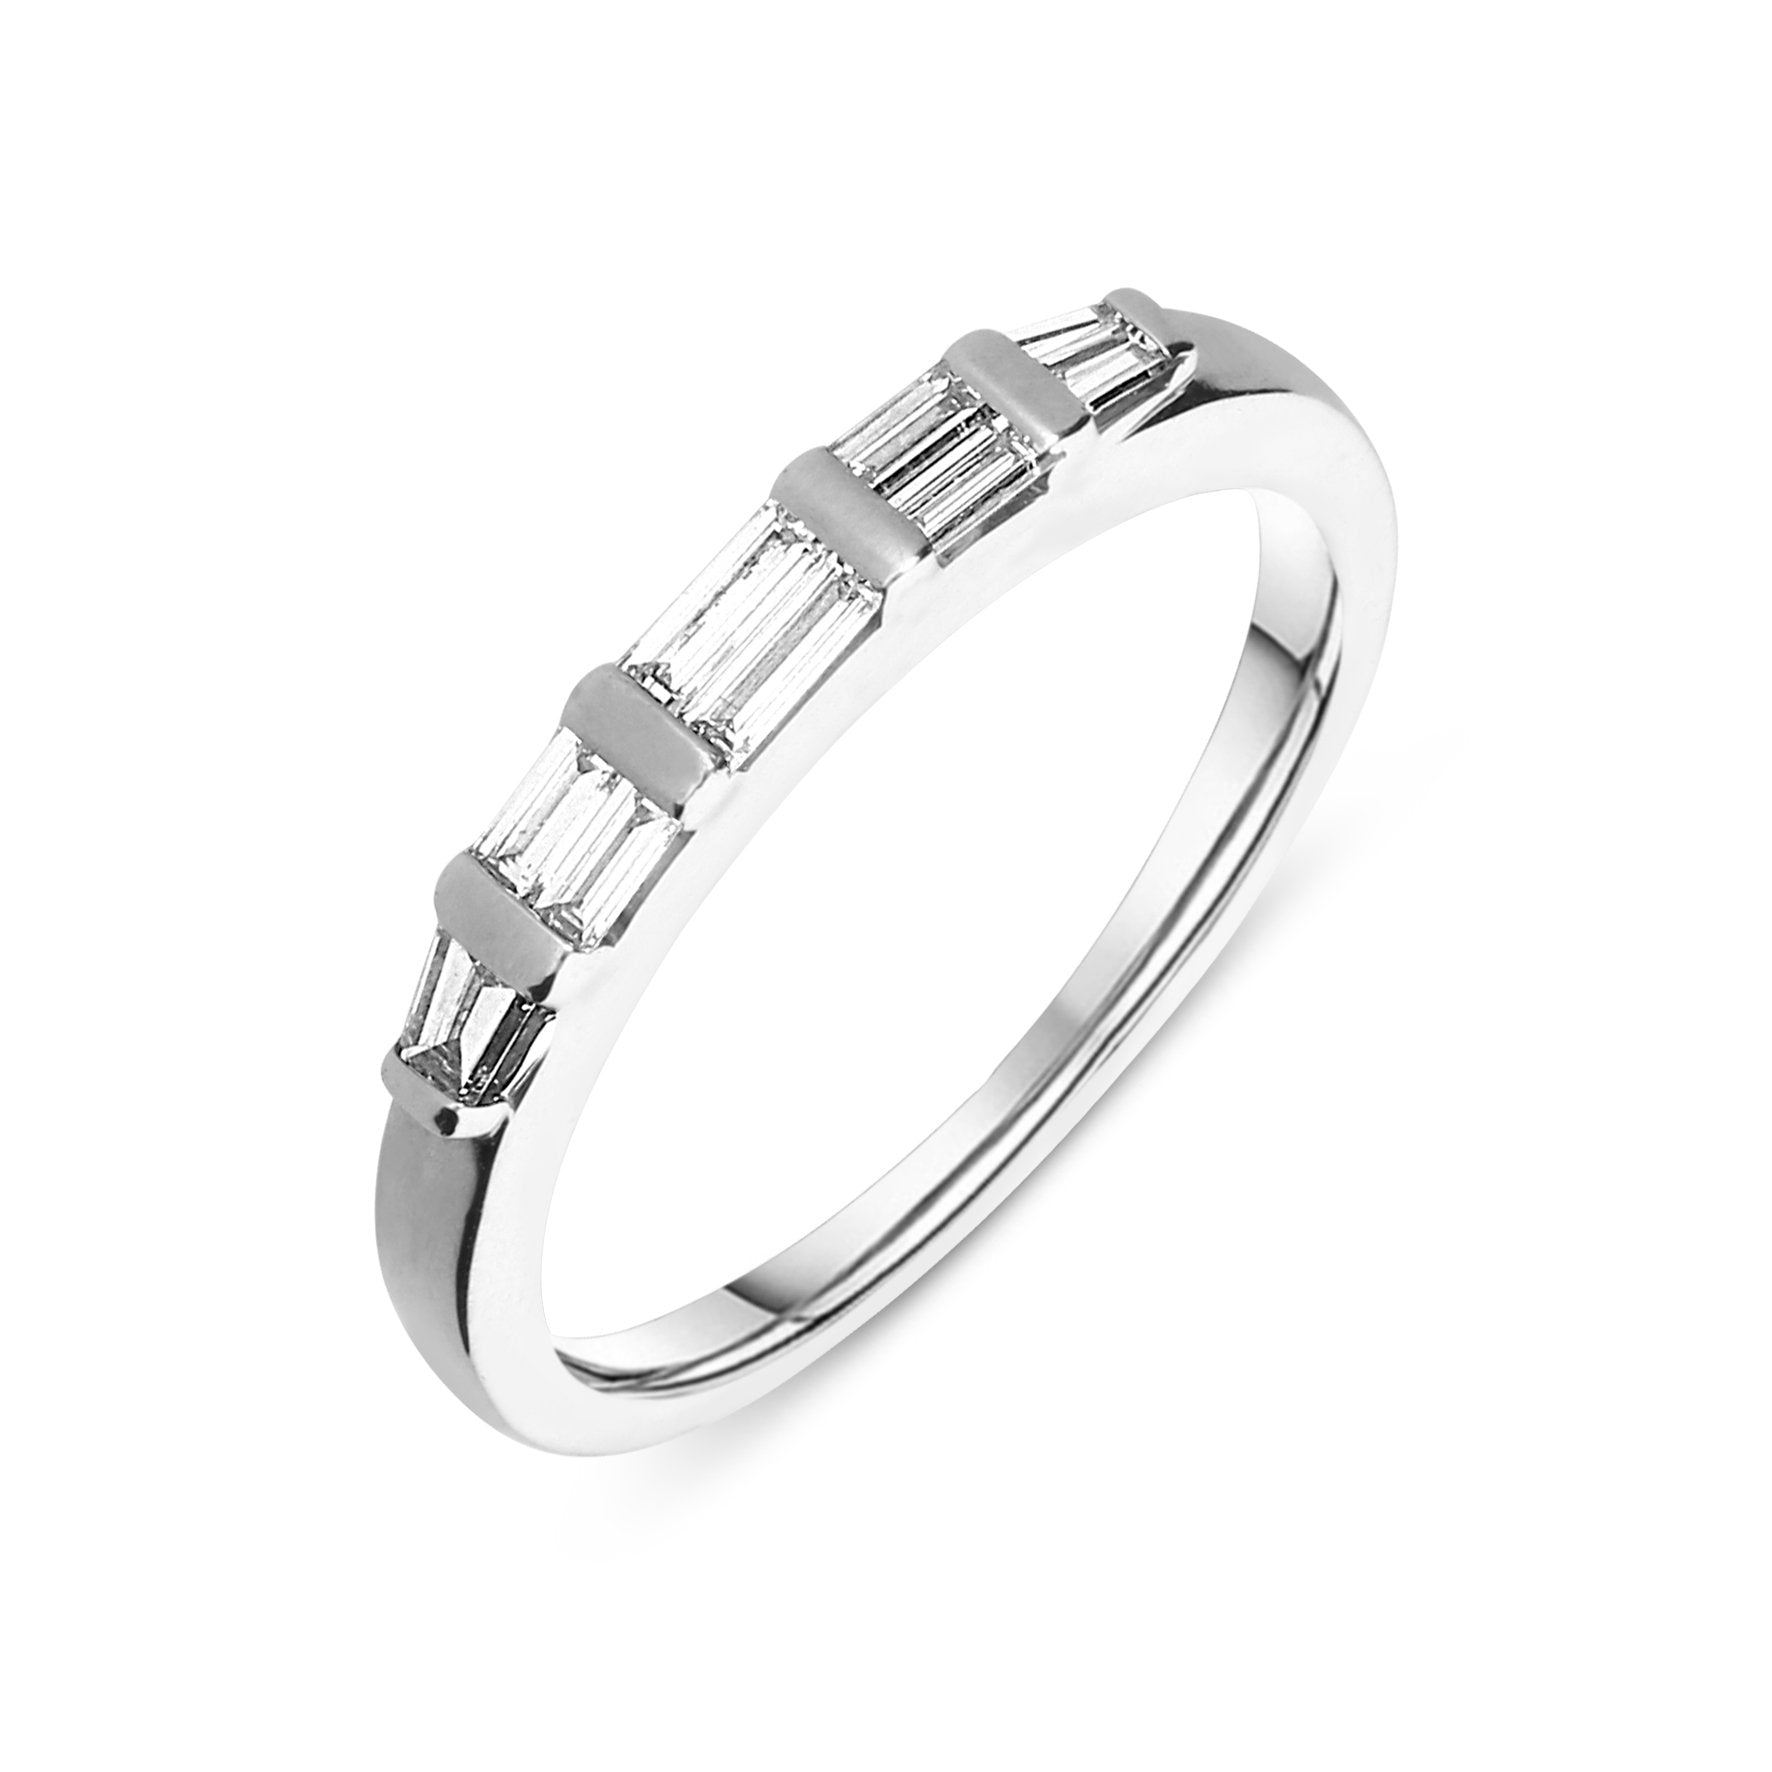 rings baguette diamond products ring horizontal sidewayring white gold wedding